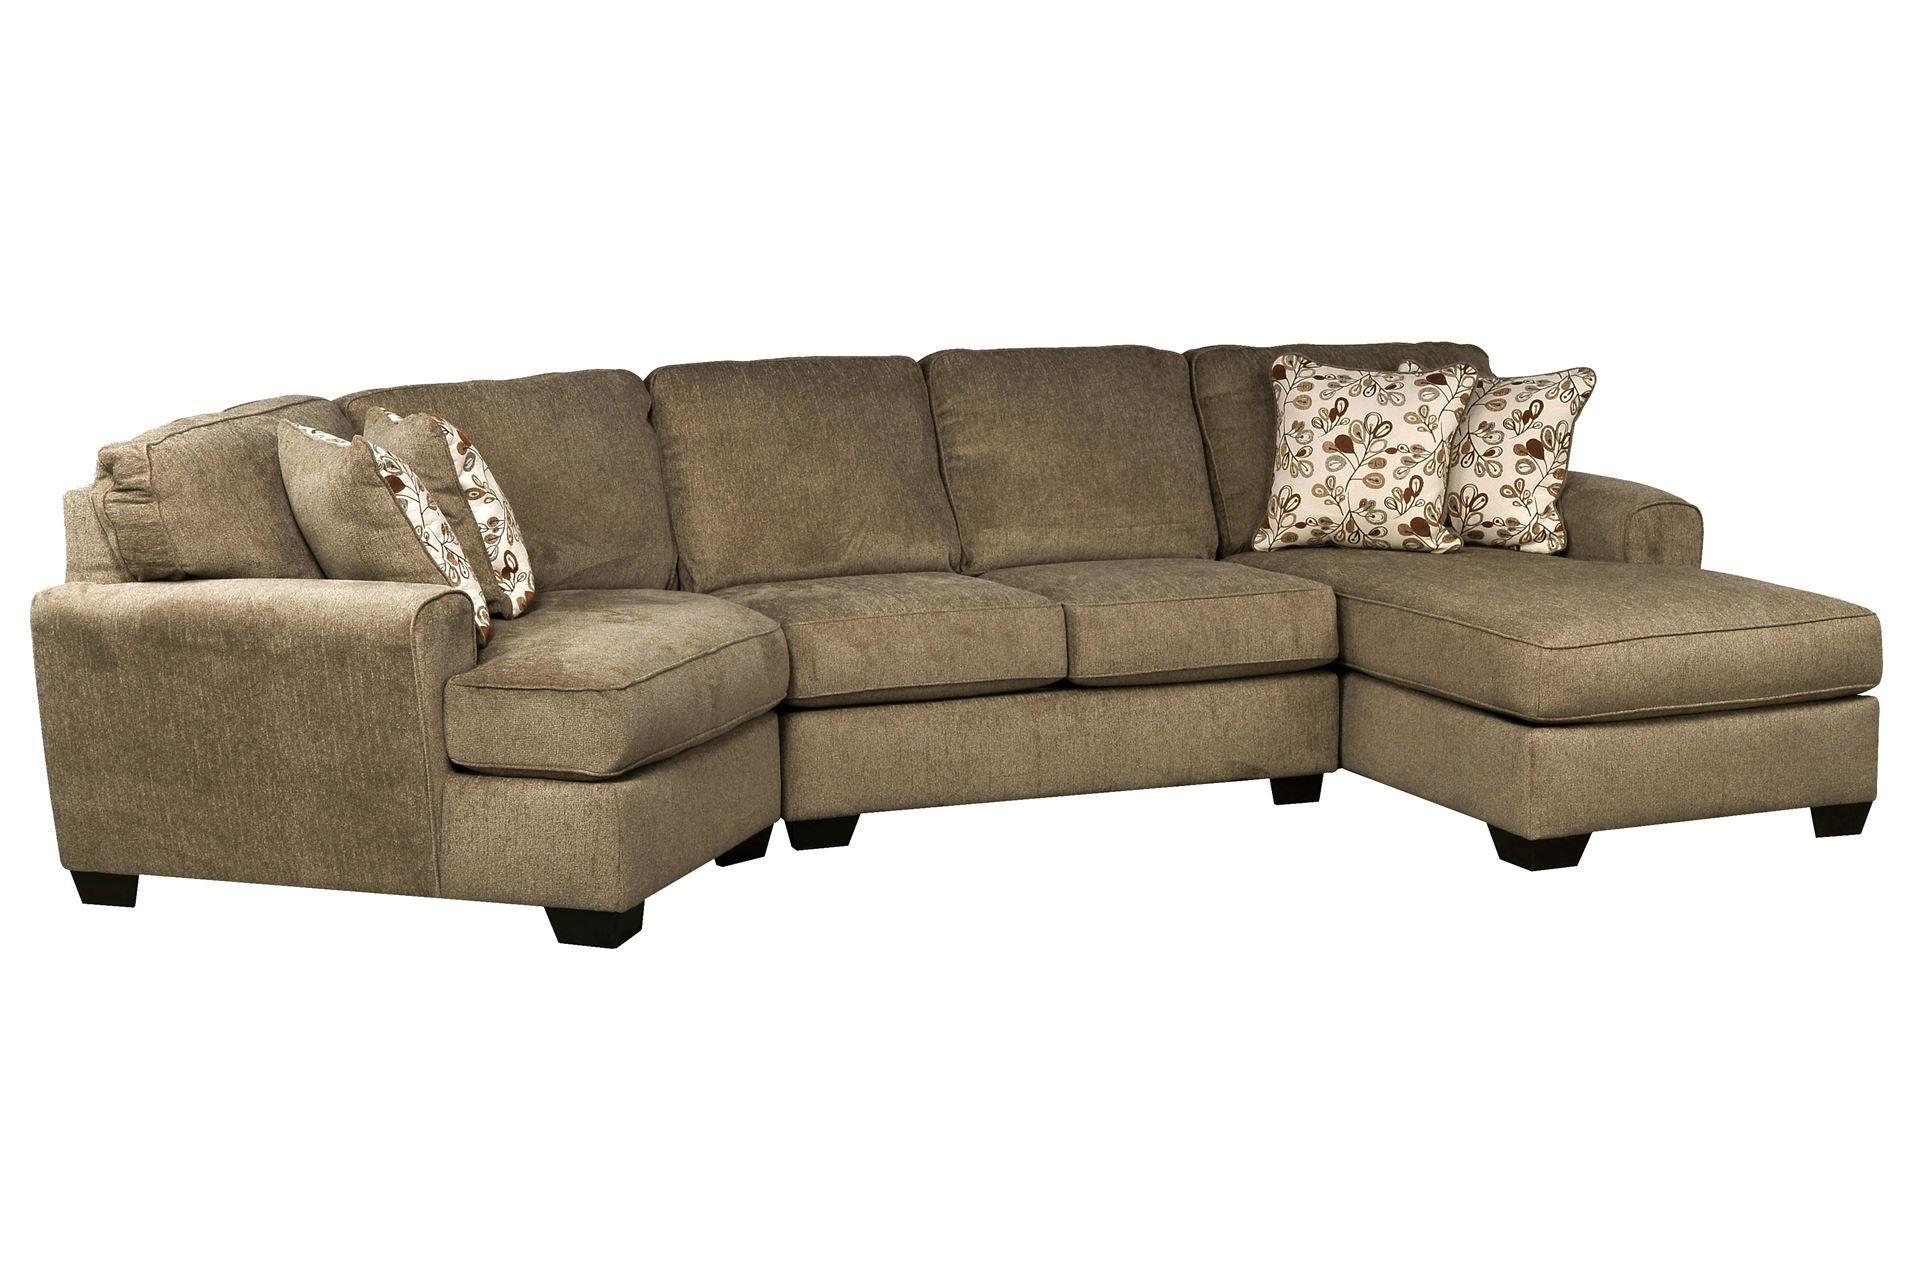 Don't Love The Color, But The Shape Is Great! | Patola Park 3 Piece Pertaining To Sectional Sofas With Cuddler Chaise (View 8 of 10)